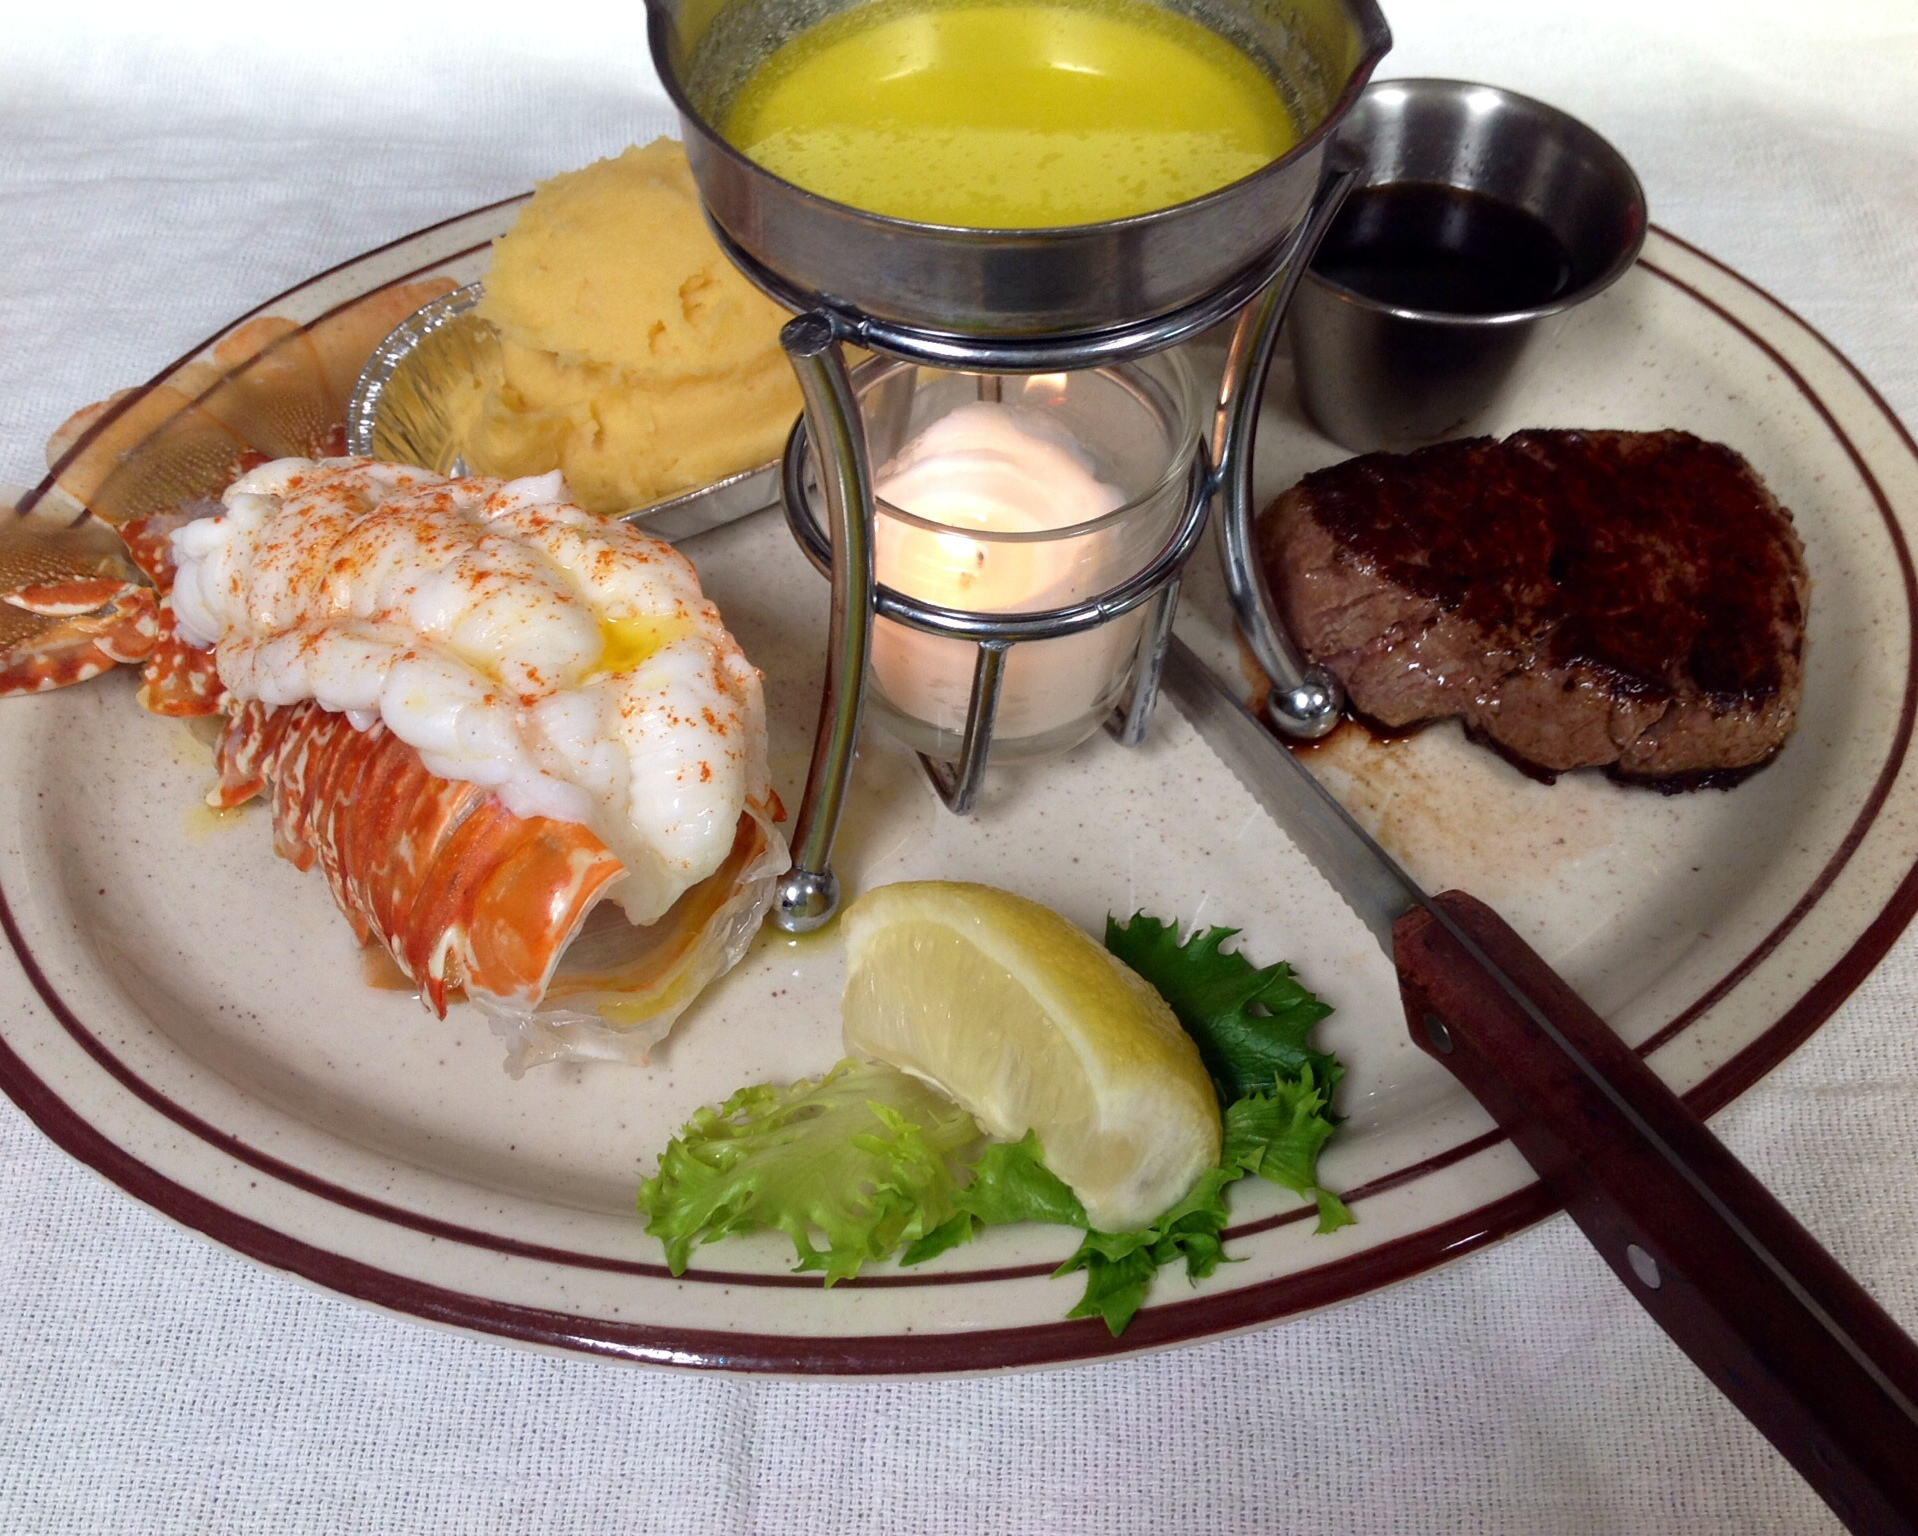 The Branding Iron Supper Club's menu consists of delicious steaks and seafoods in Wisconsin Rapids, WI